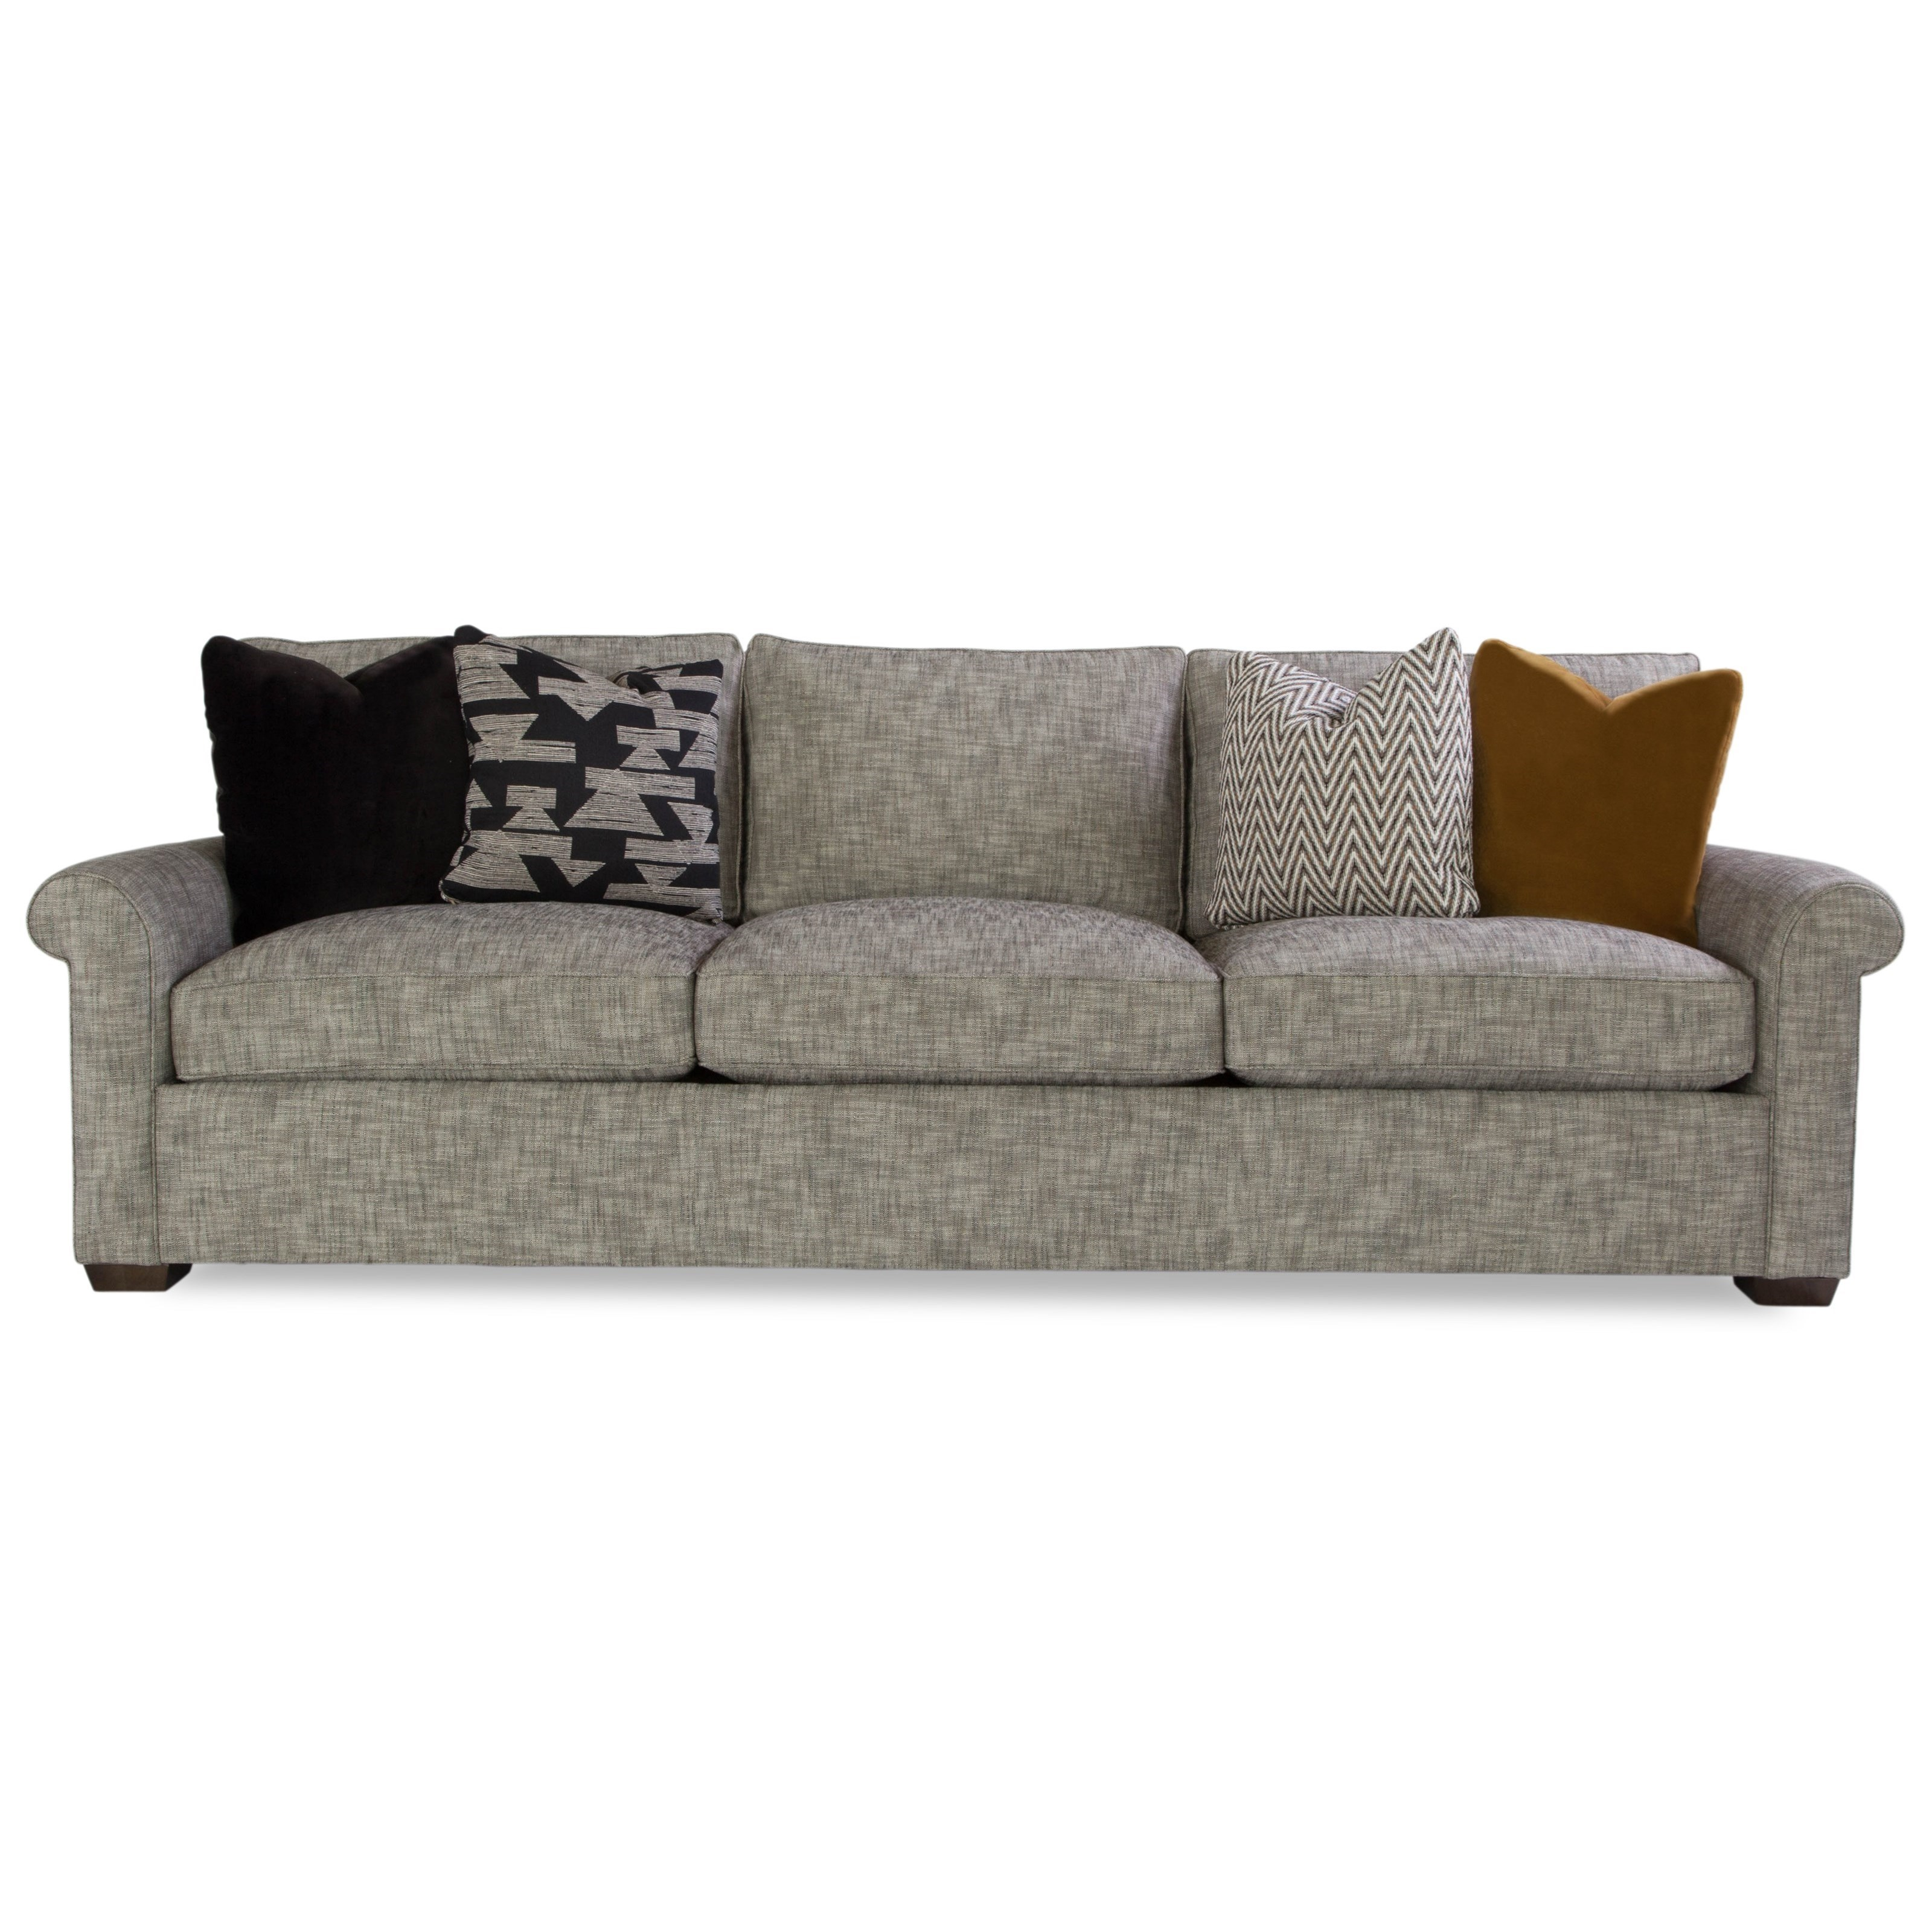 Plush Customizable Sofa w/ Rolled Arms by Huntington House at Belfort Furniture